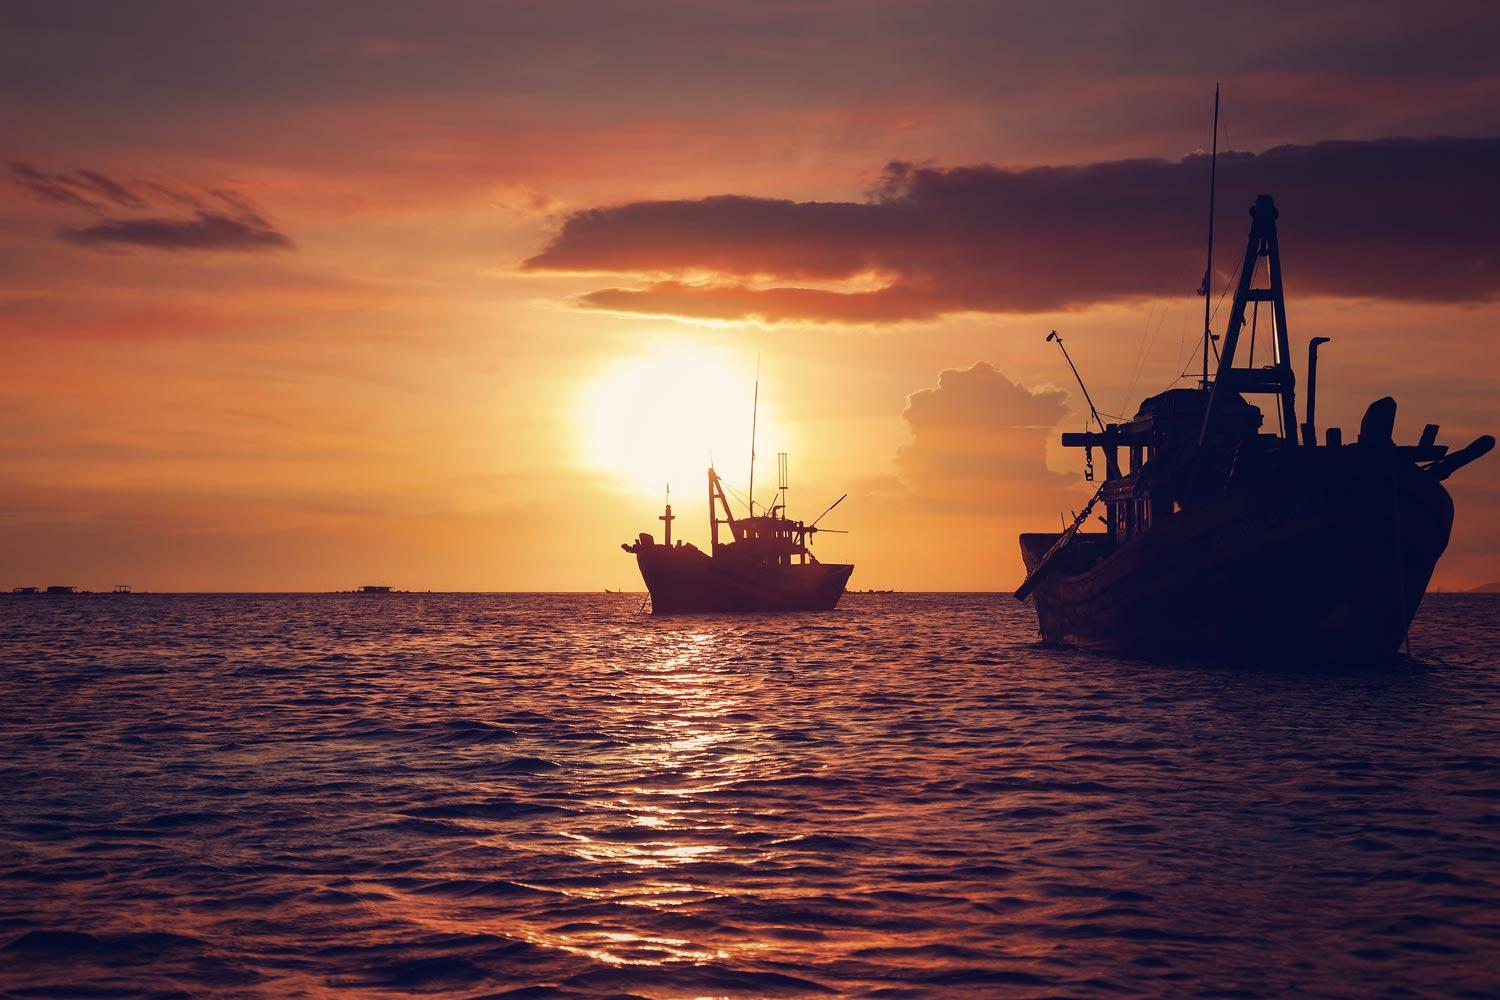 Study: Global Fisheries to Decline 20 Percent, on Average, by 2300